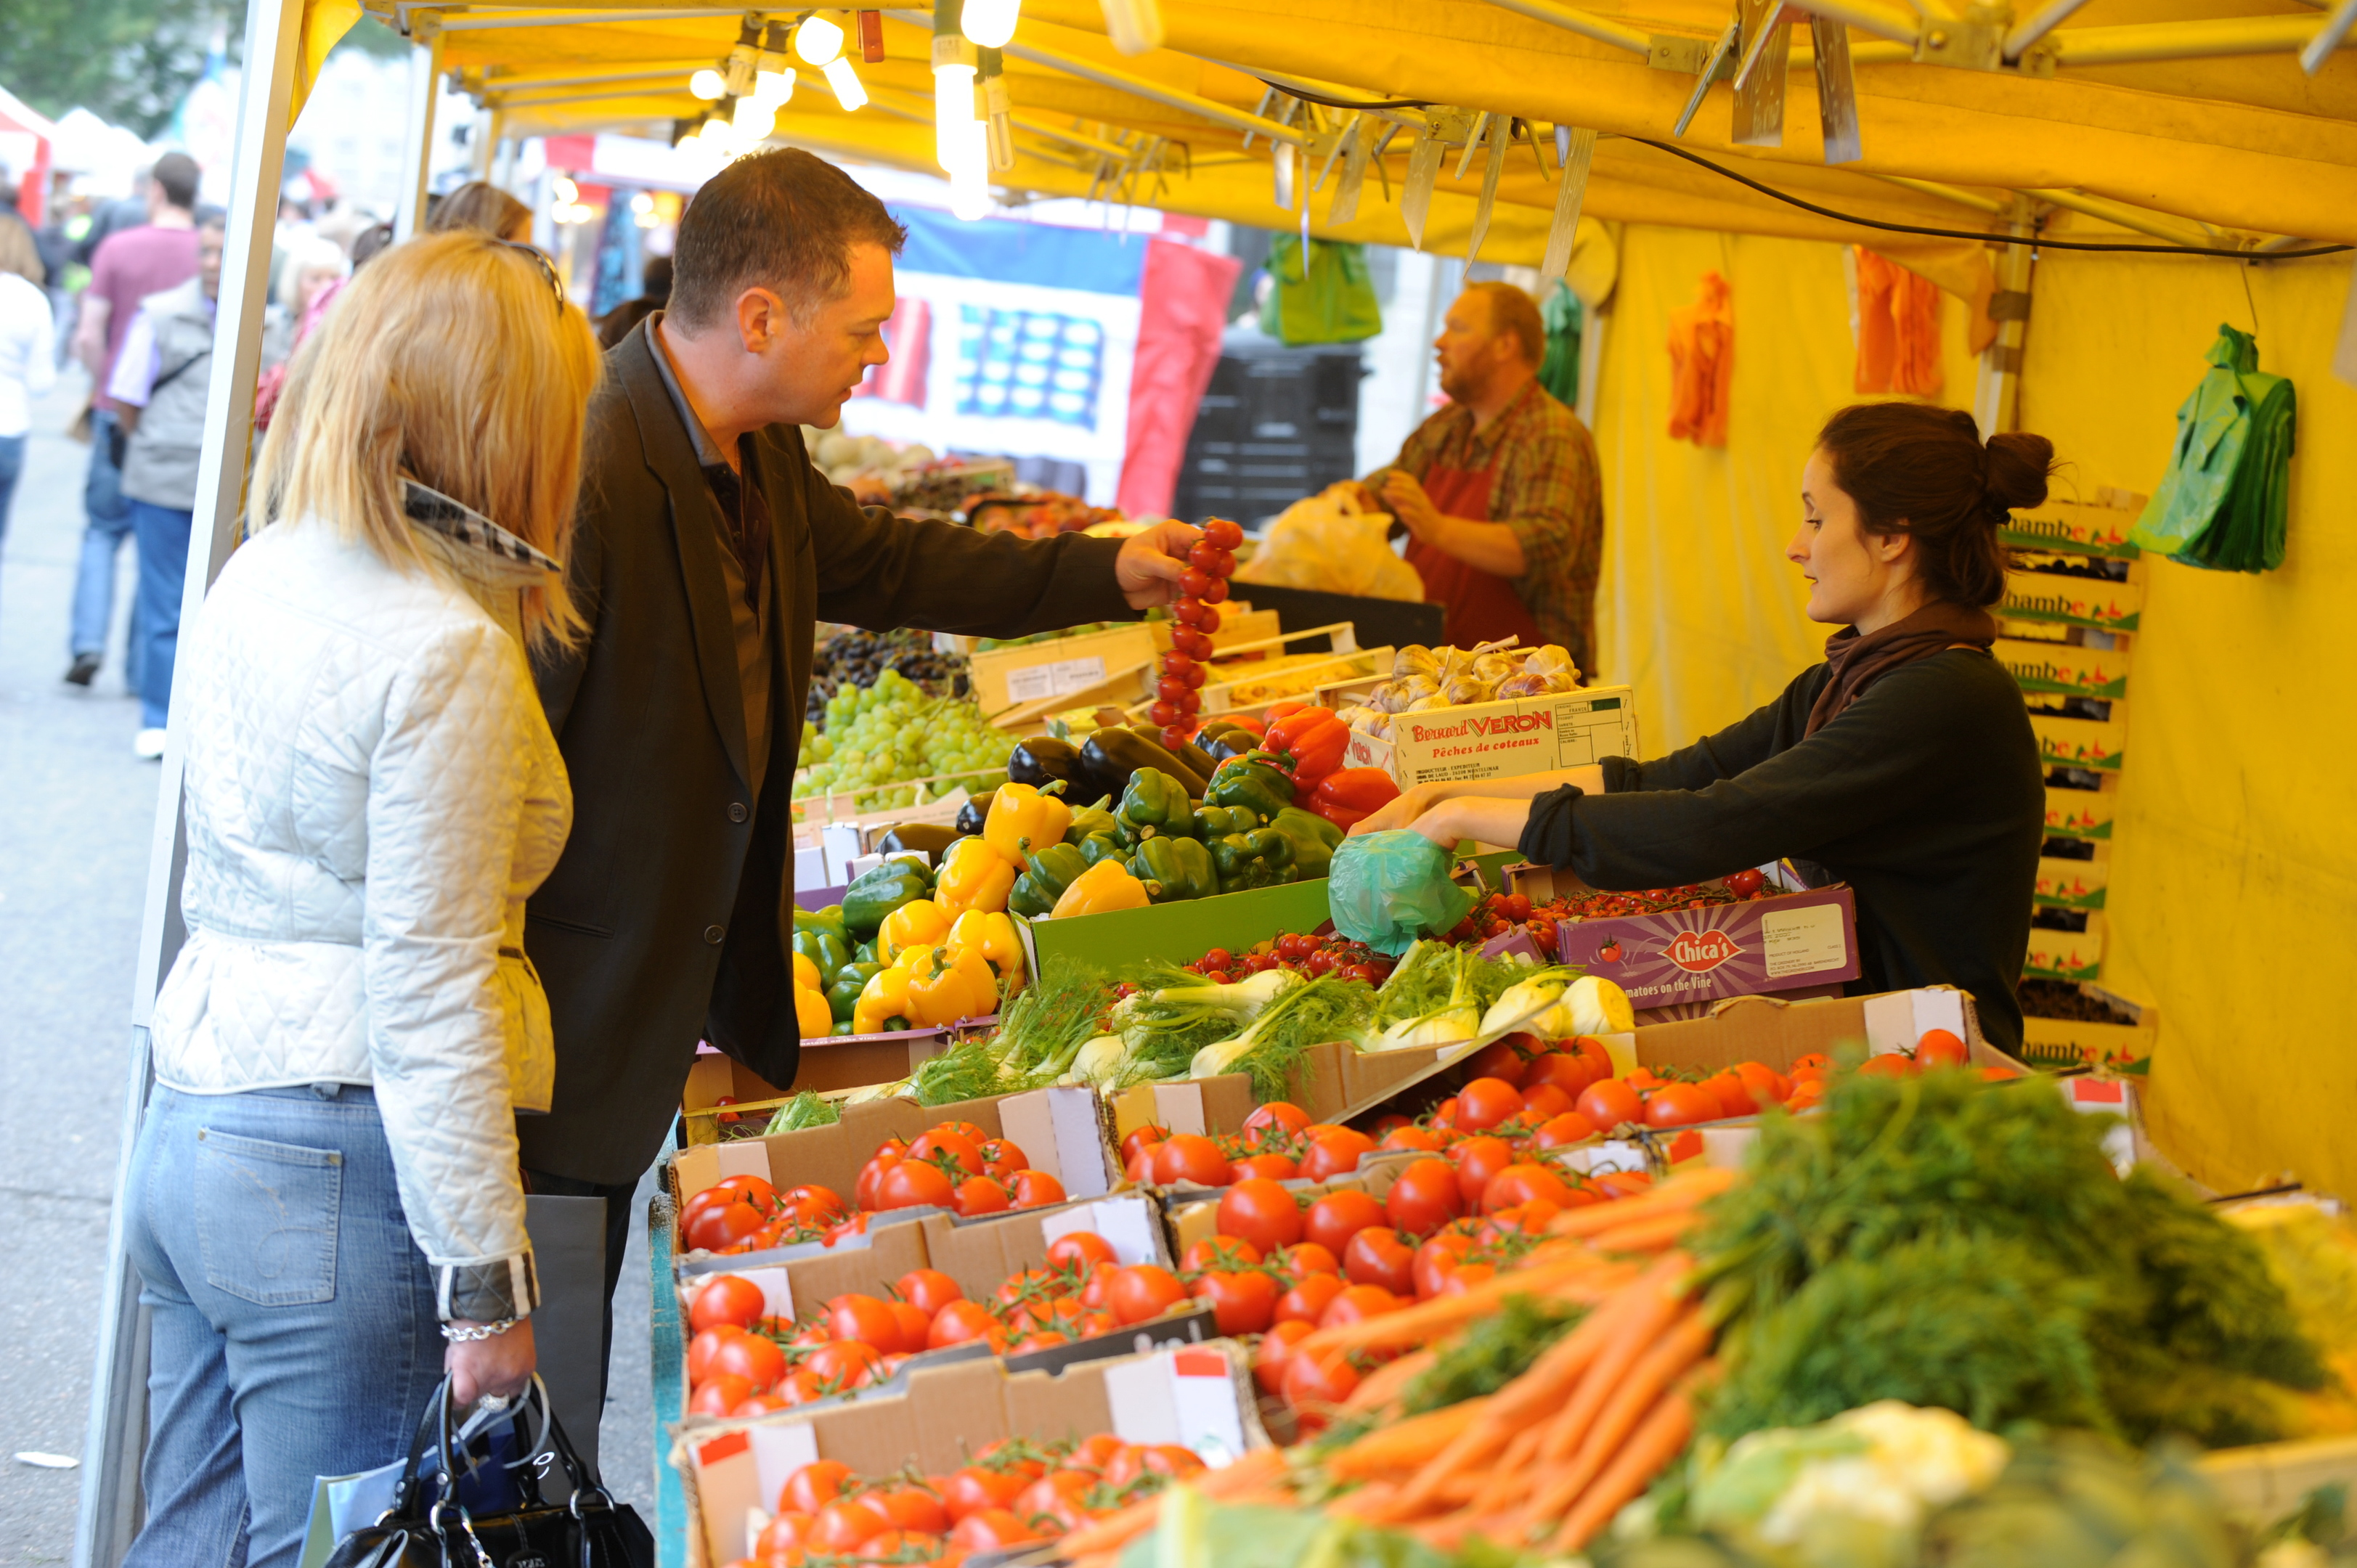 Weekly markets are just one of the ideas put forward by Independent Aberdeen.